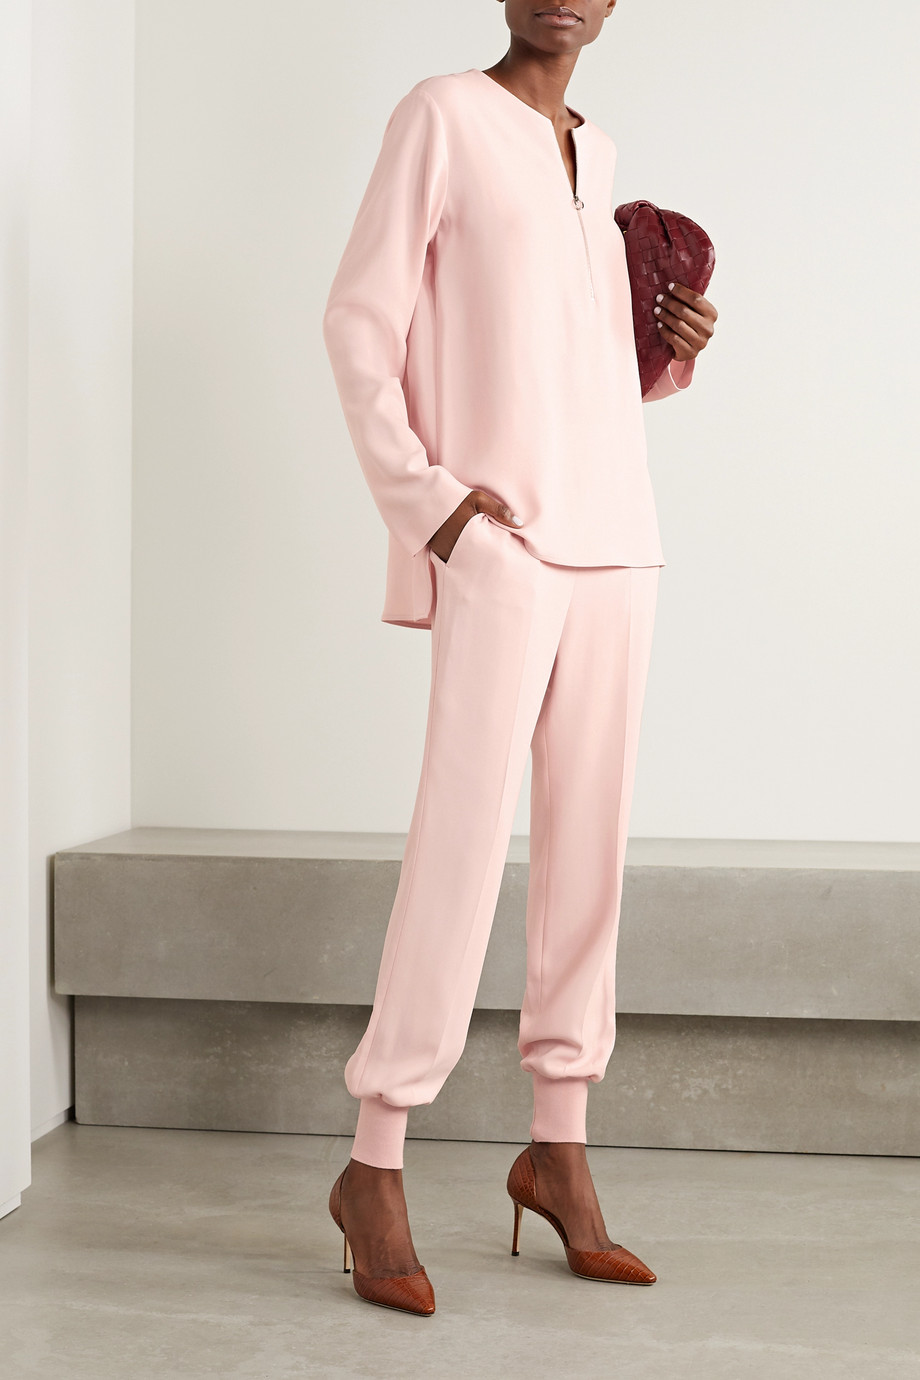 Stella McCartney + NET SUSTAIN Julia crepe track pants